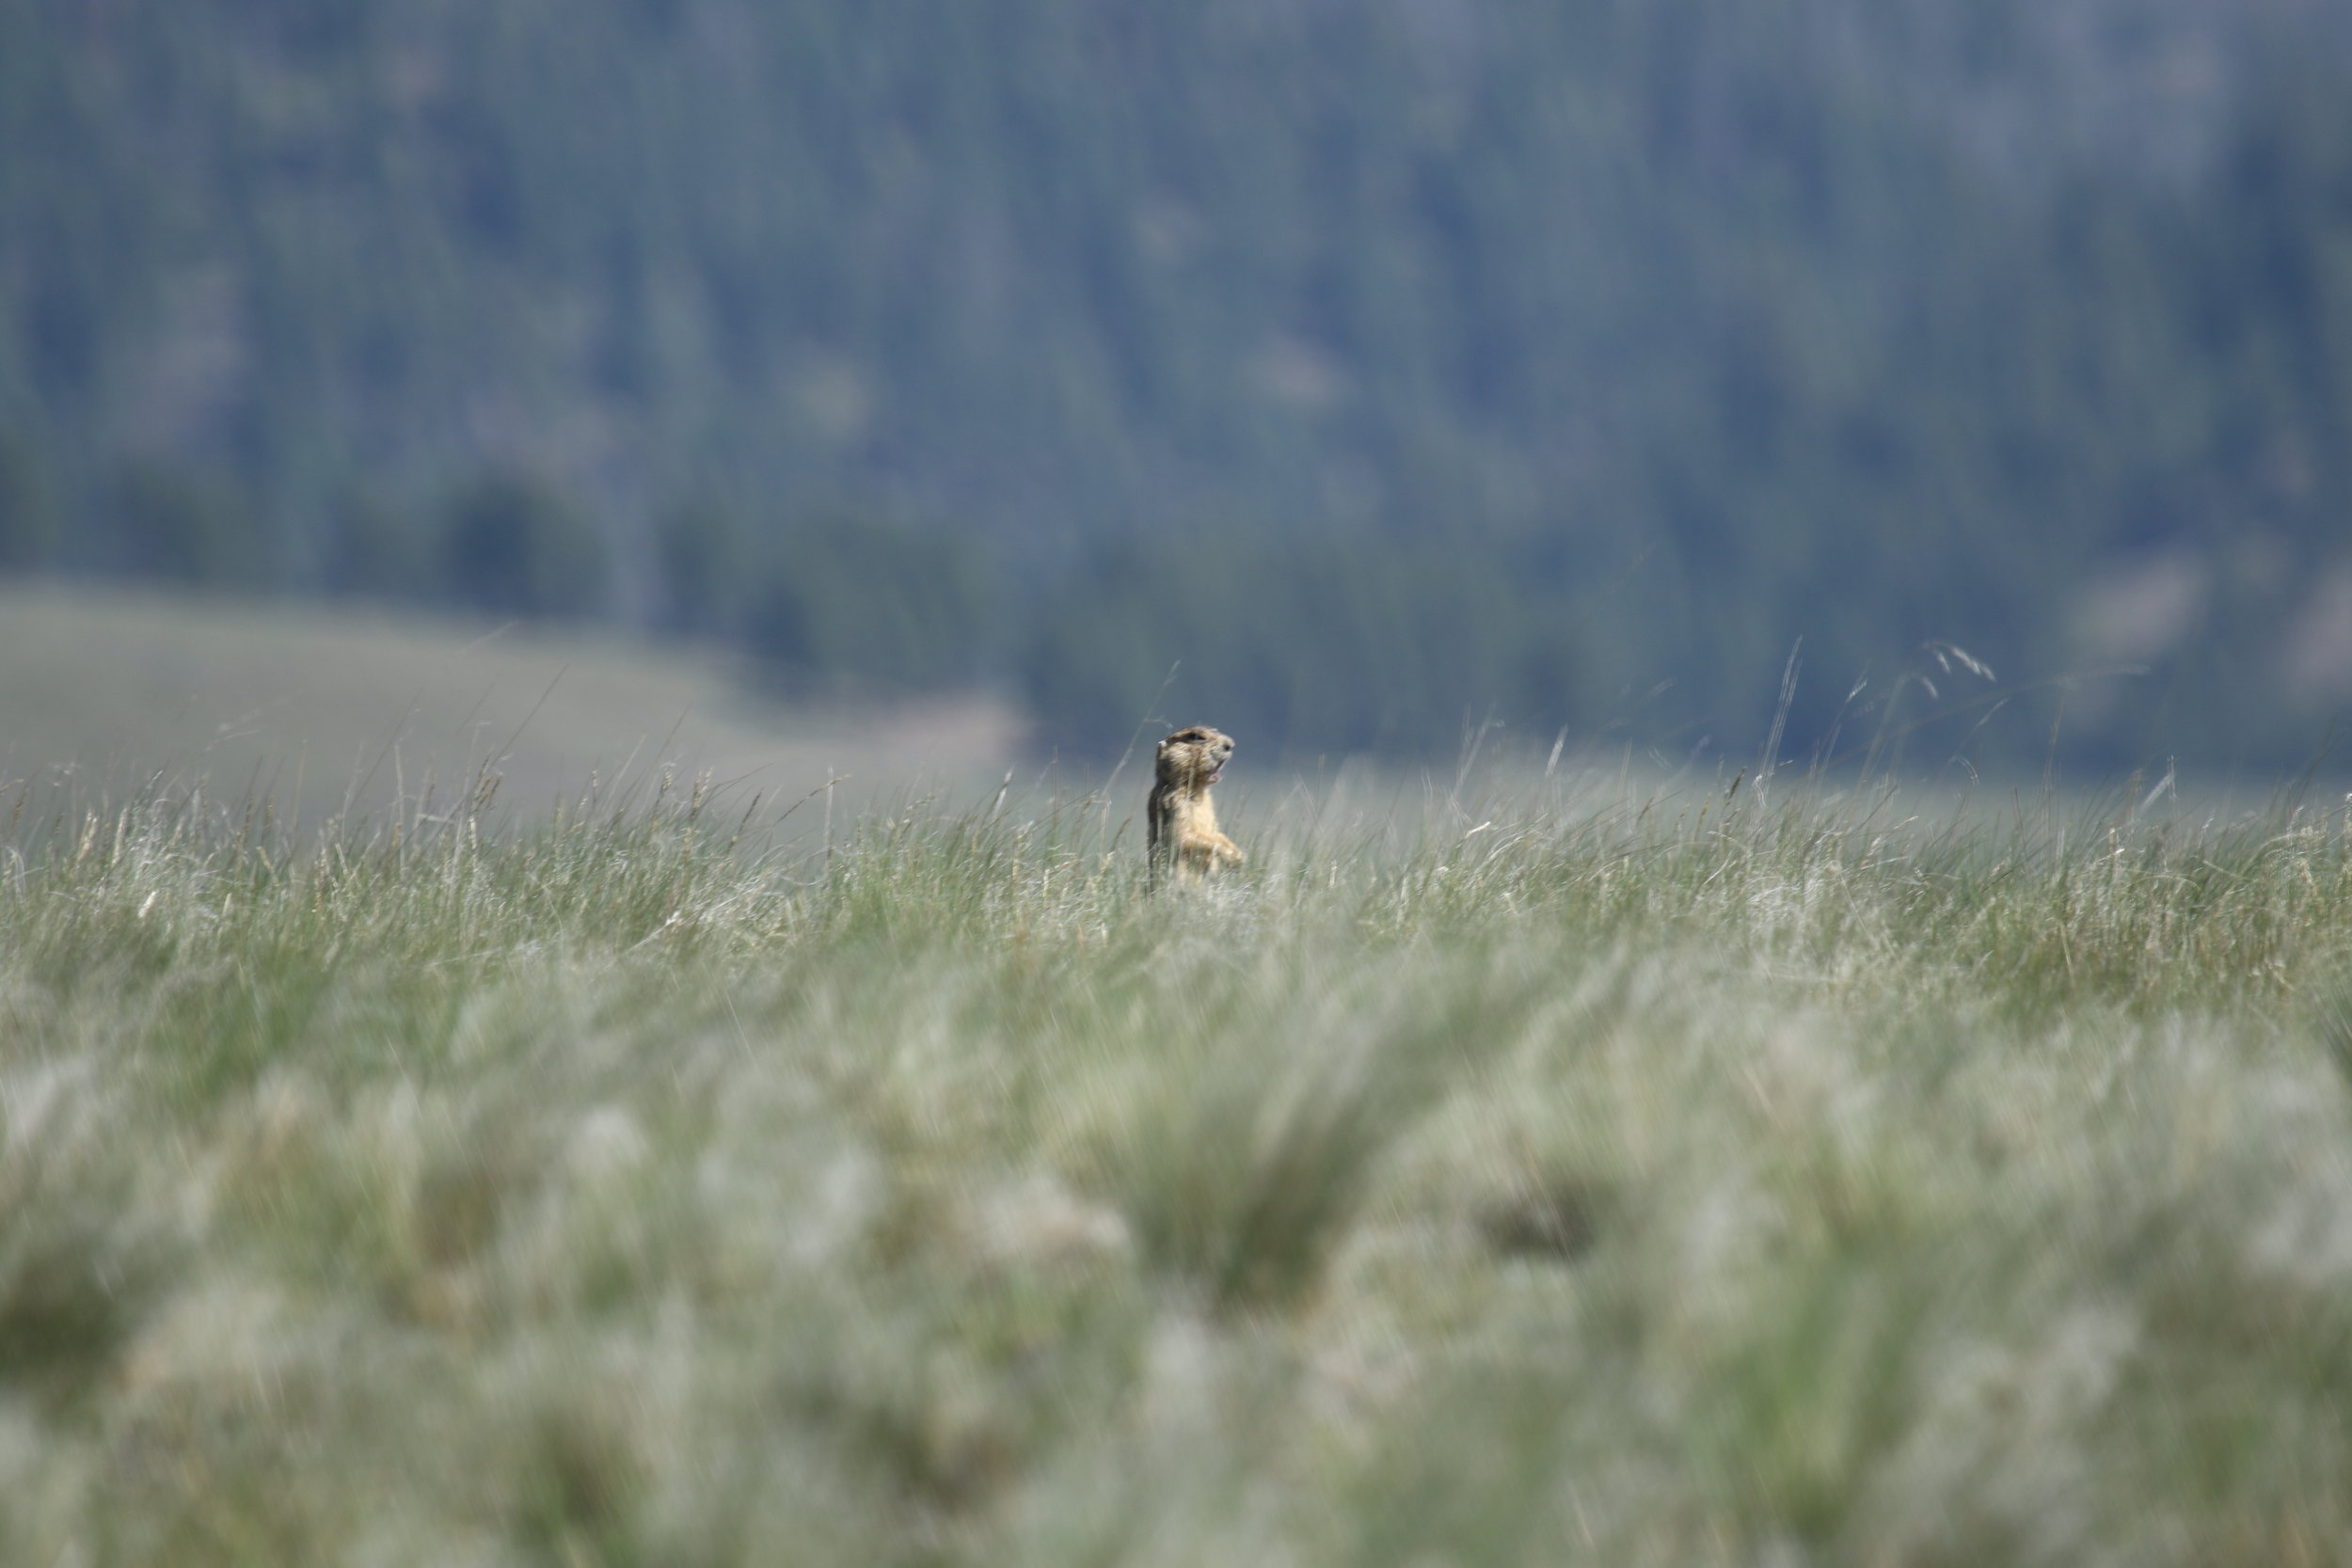 Though hard to see at a distance, this prairie dog is sounding an alarm call from the tall grass.  ©MRR 2017